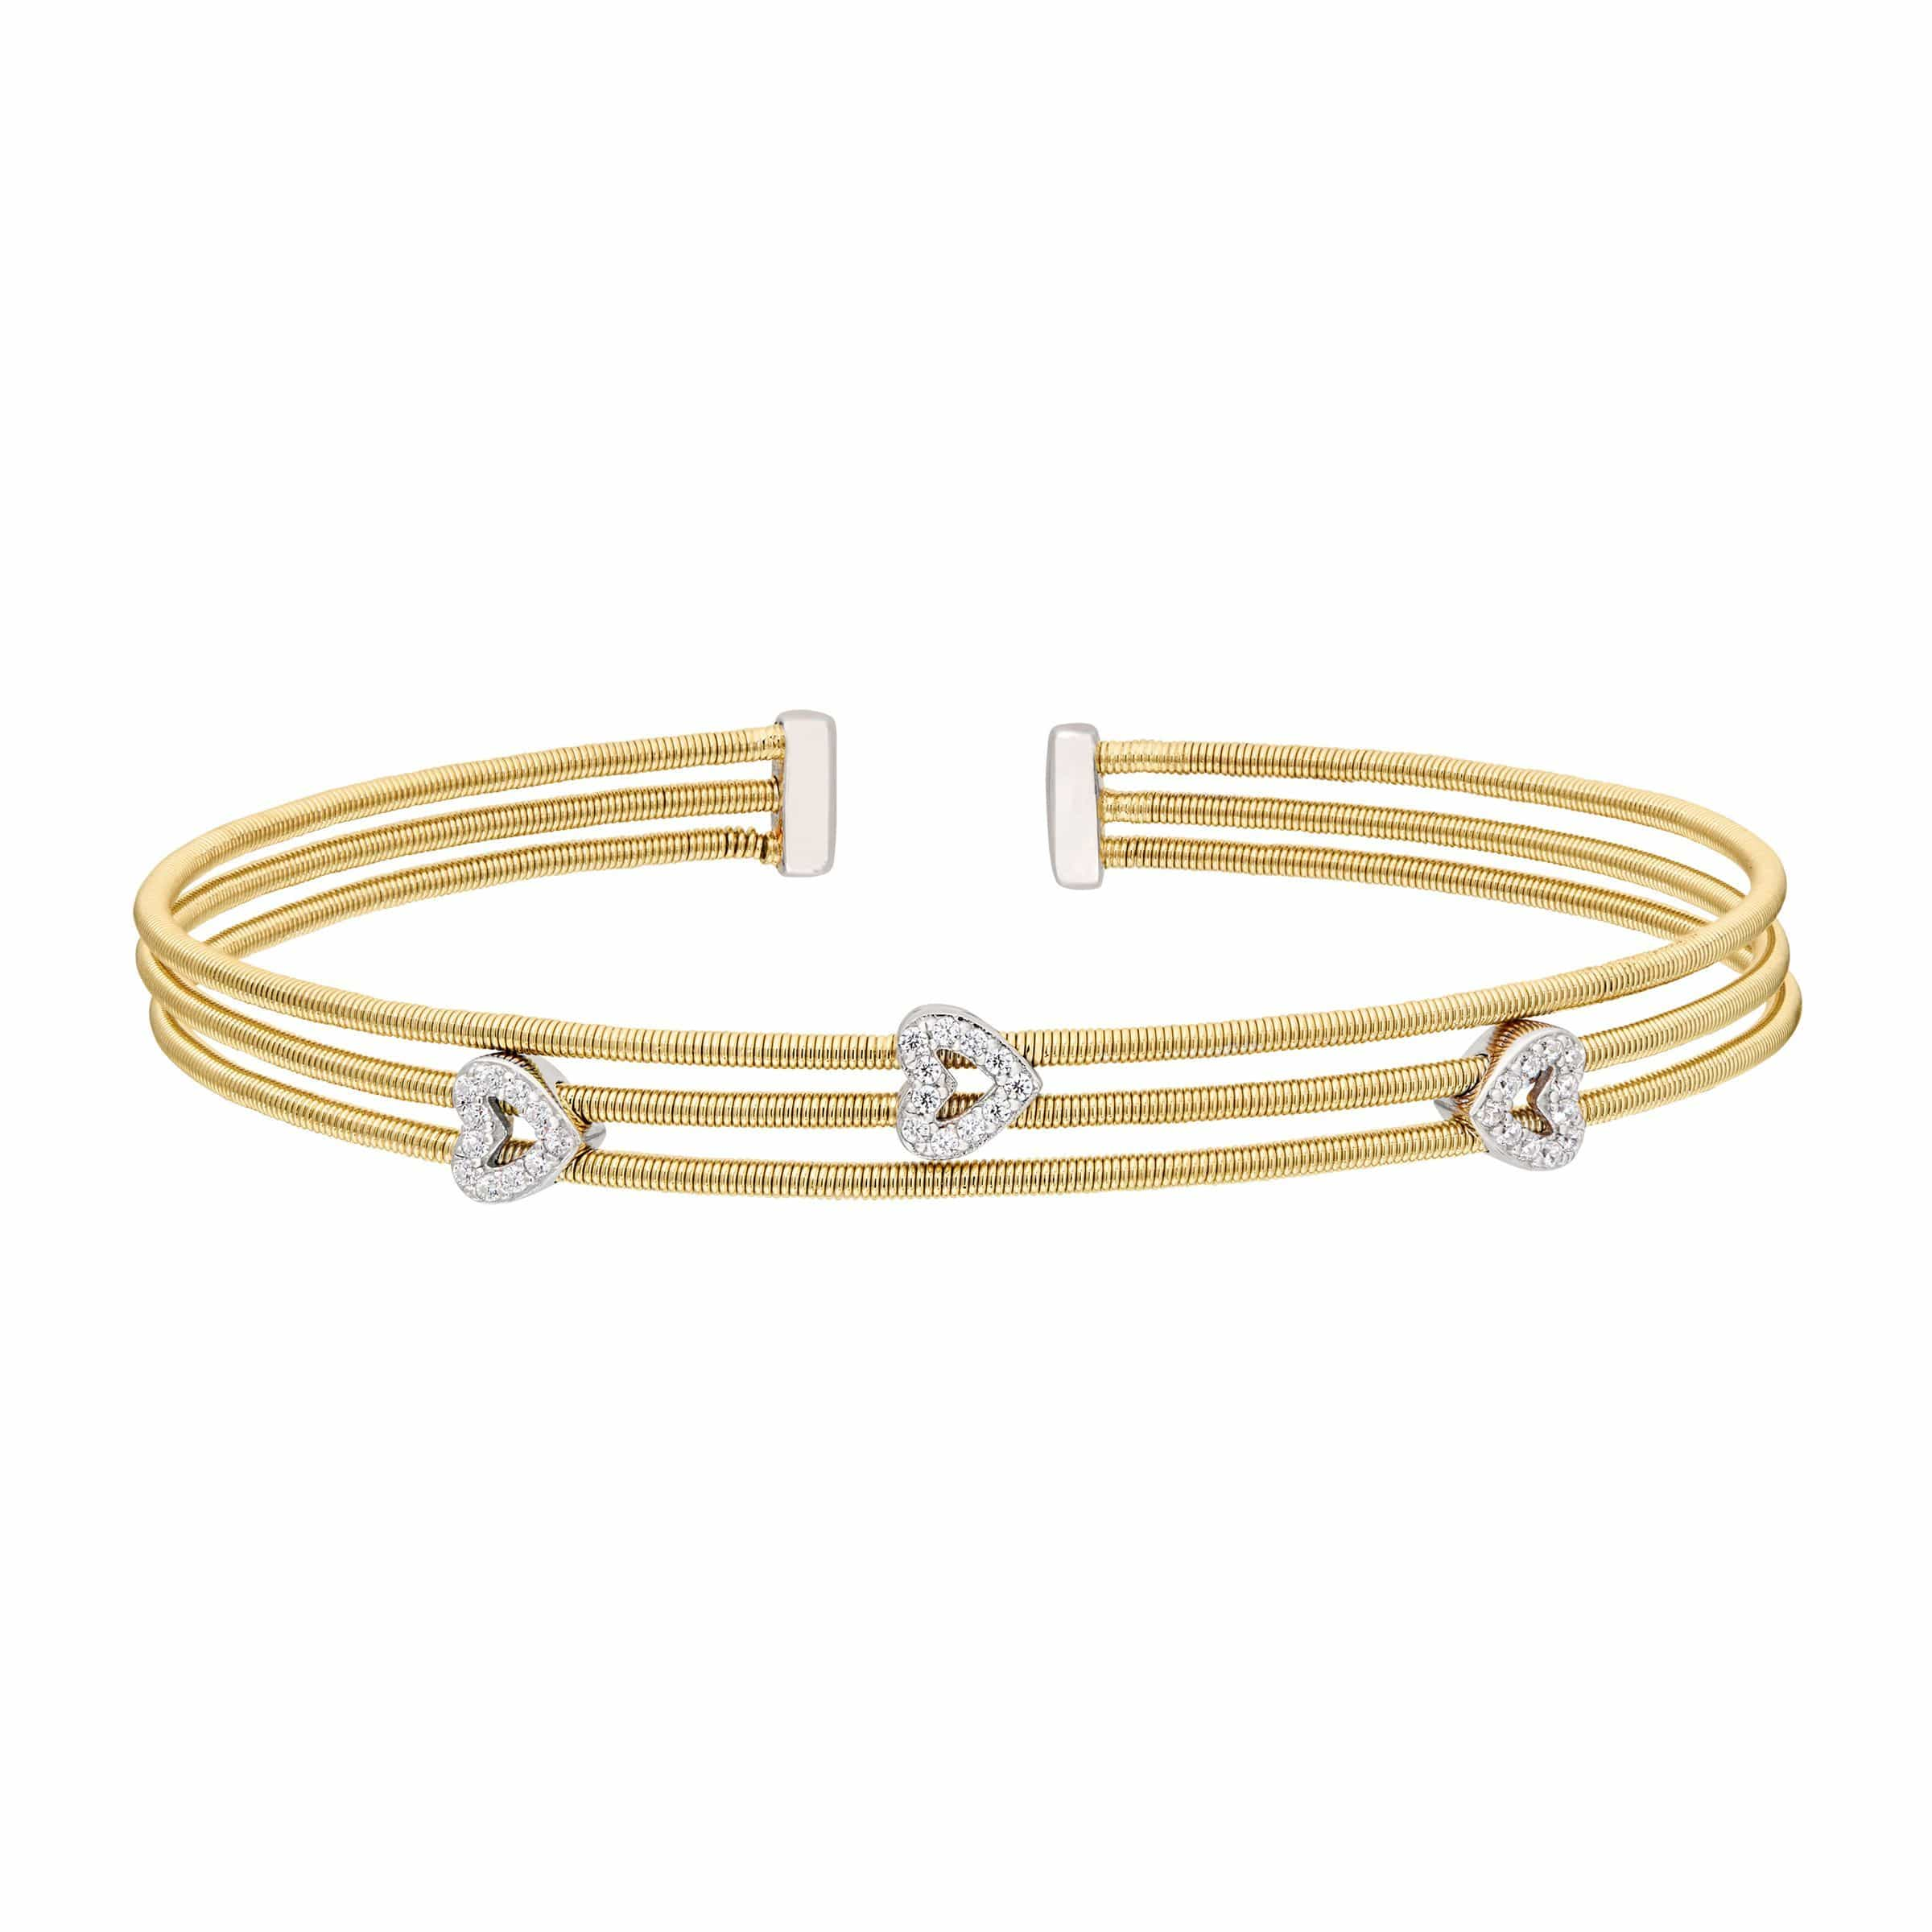 Gold Finish Sterling Silver Three Cable Cuff Bracelet - LL7010B-G/RH-Kelly Waters-Renee Taylor Gallery